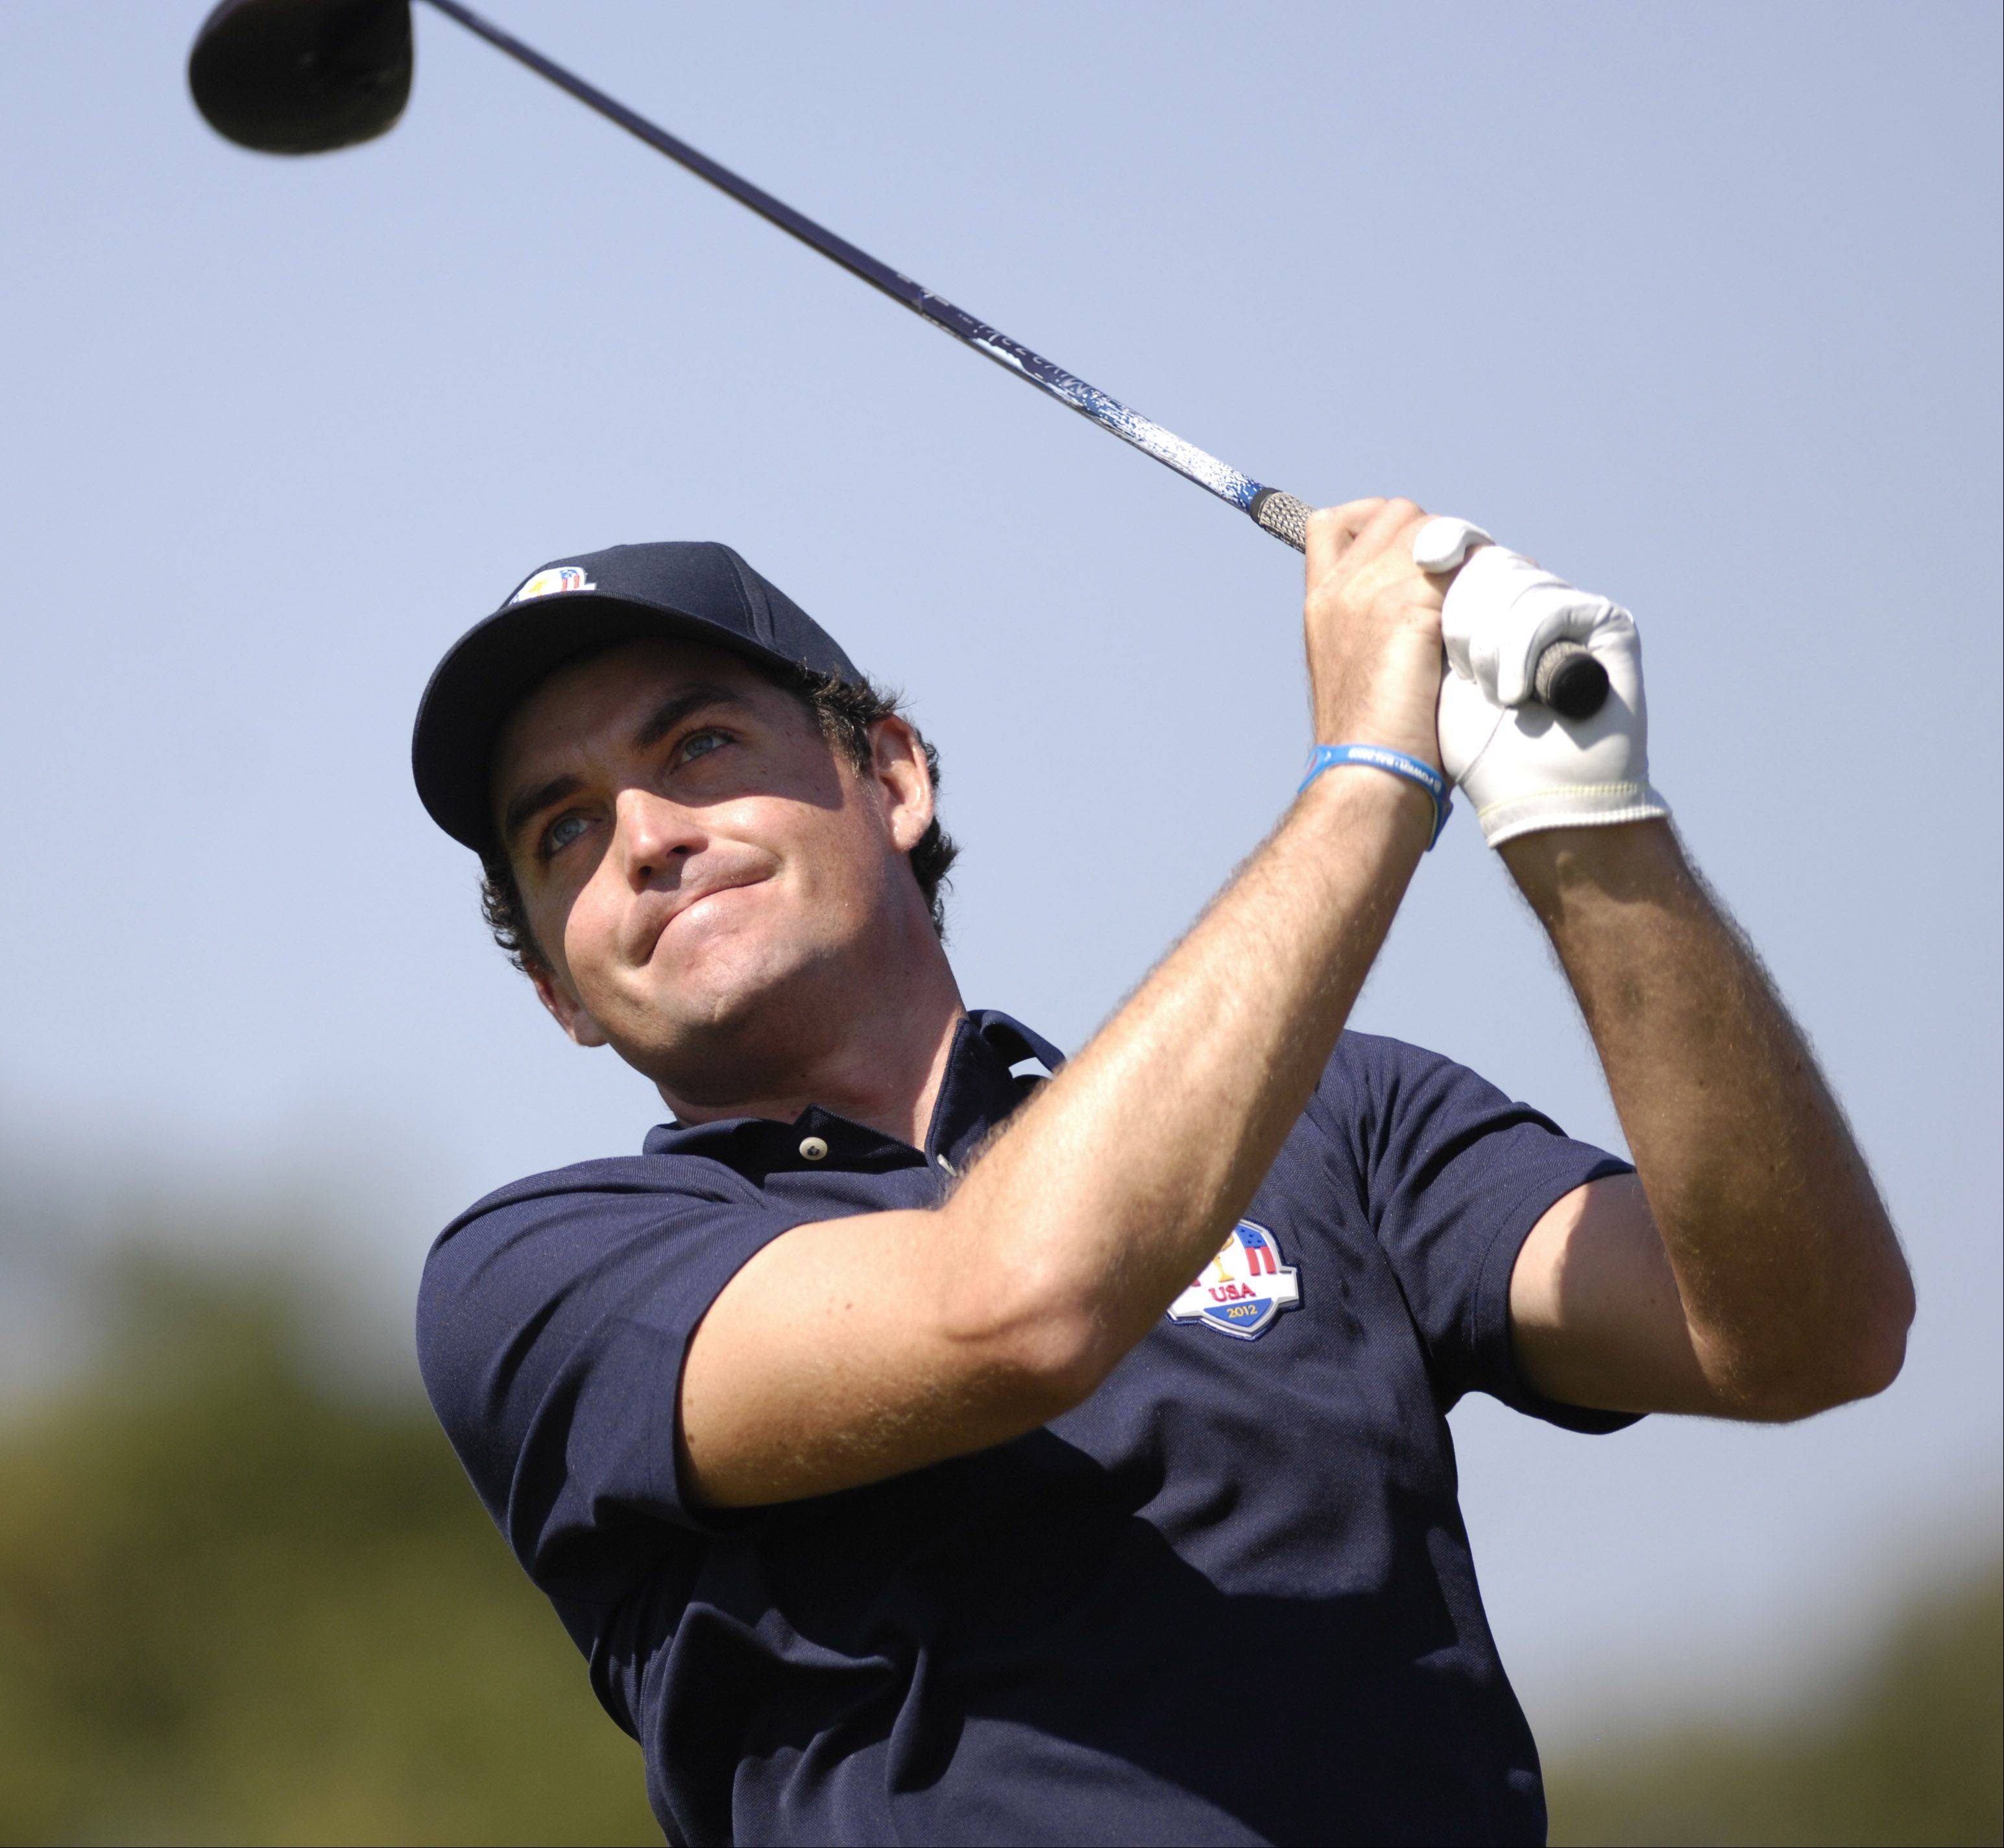 Team USA's Keegan Bradley watches a tee shot.